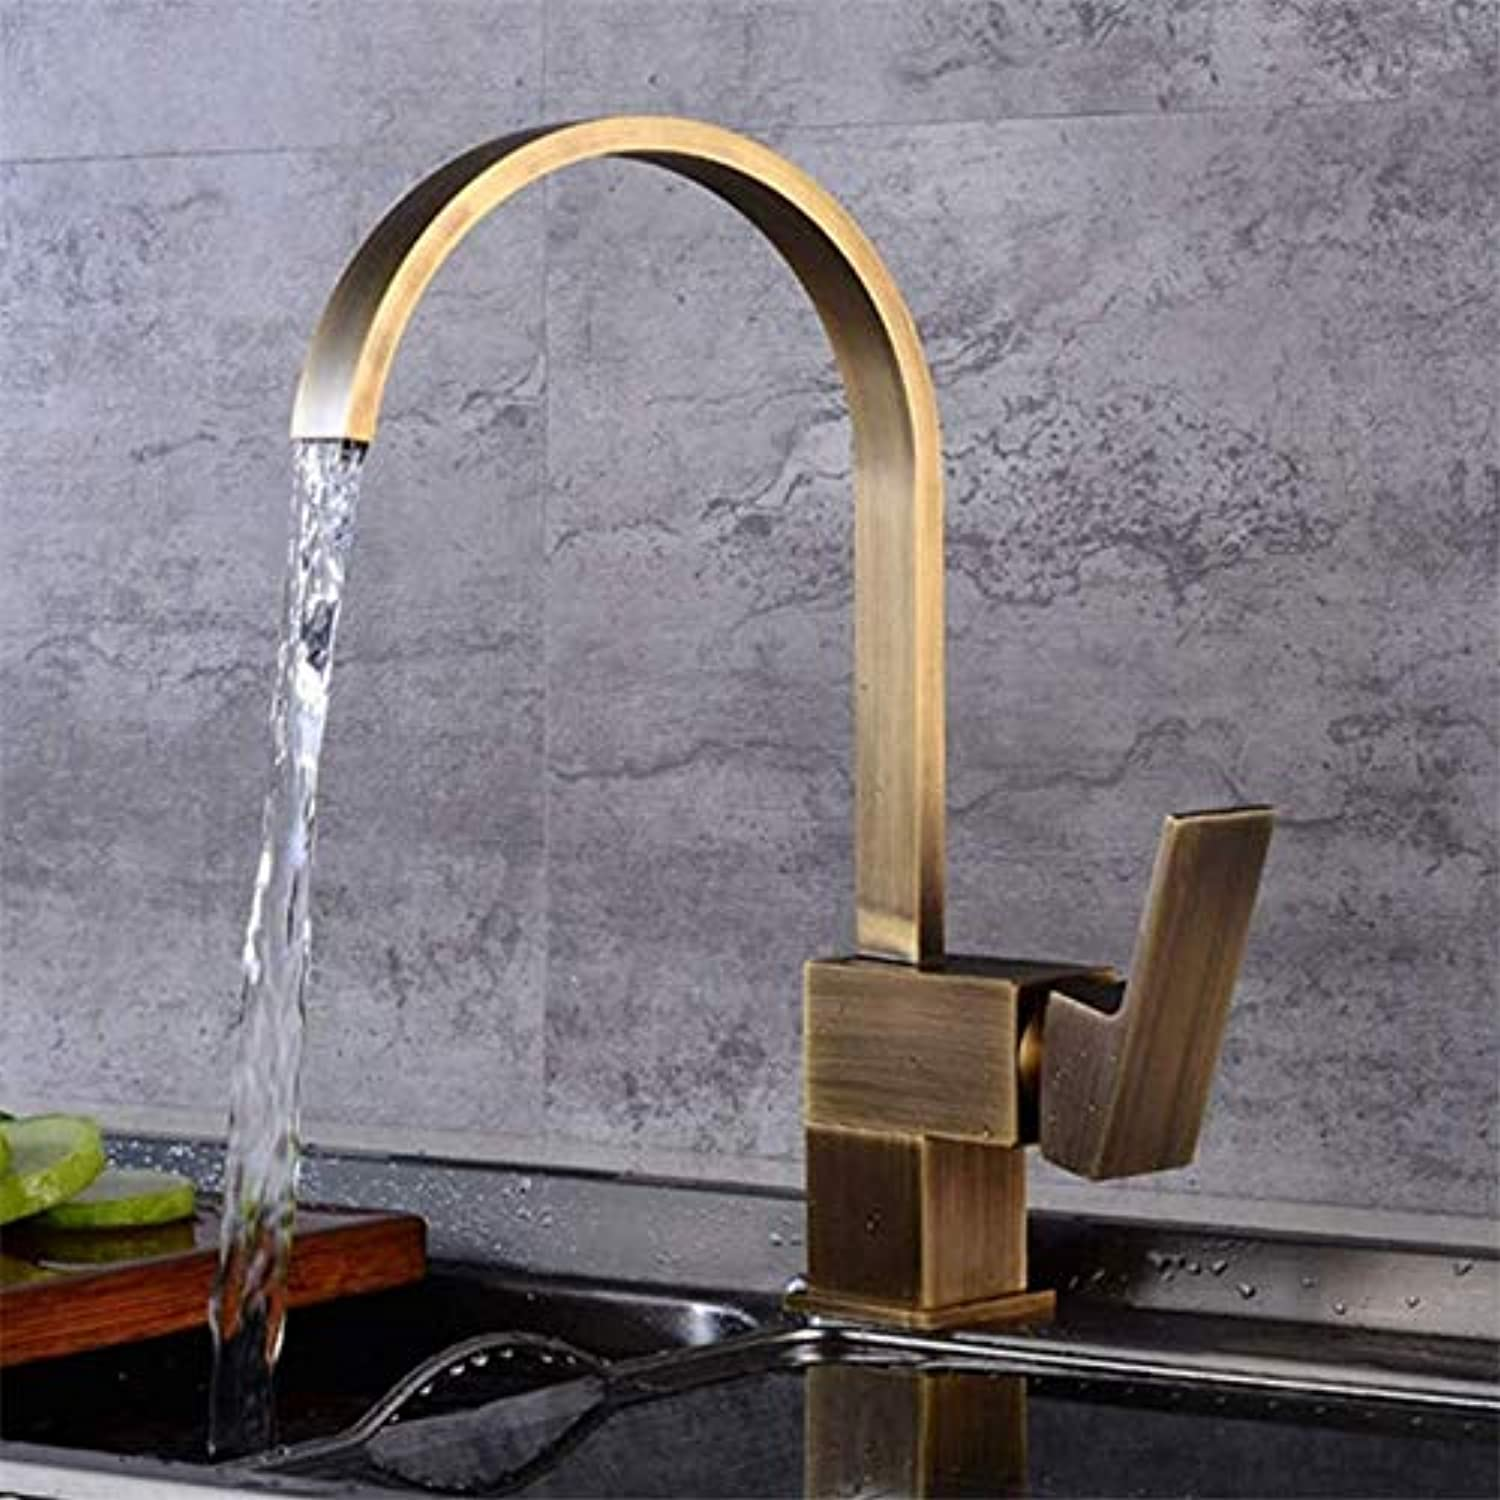 Kitchen Sink Faucet, Brass hot and Cold Faucet Sink Faucet Vegetable wash Basin Sink Faucet 360 Degree redating Faucet